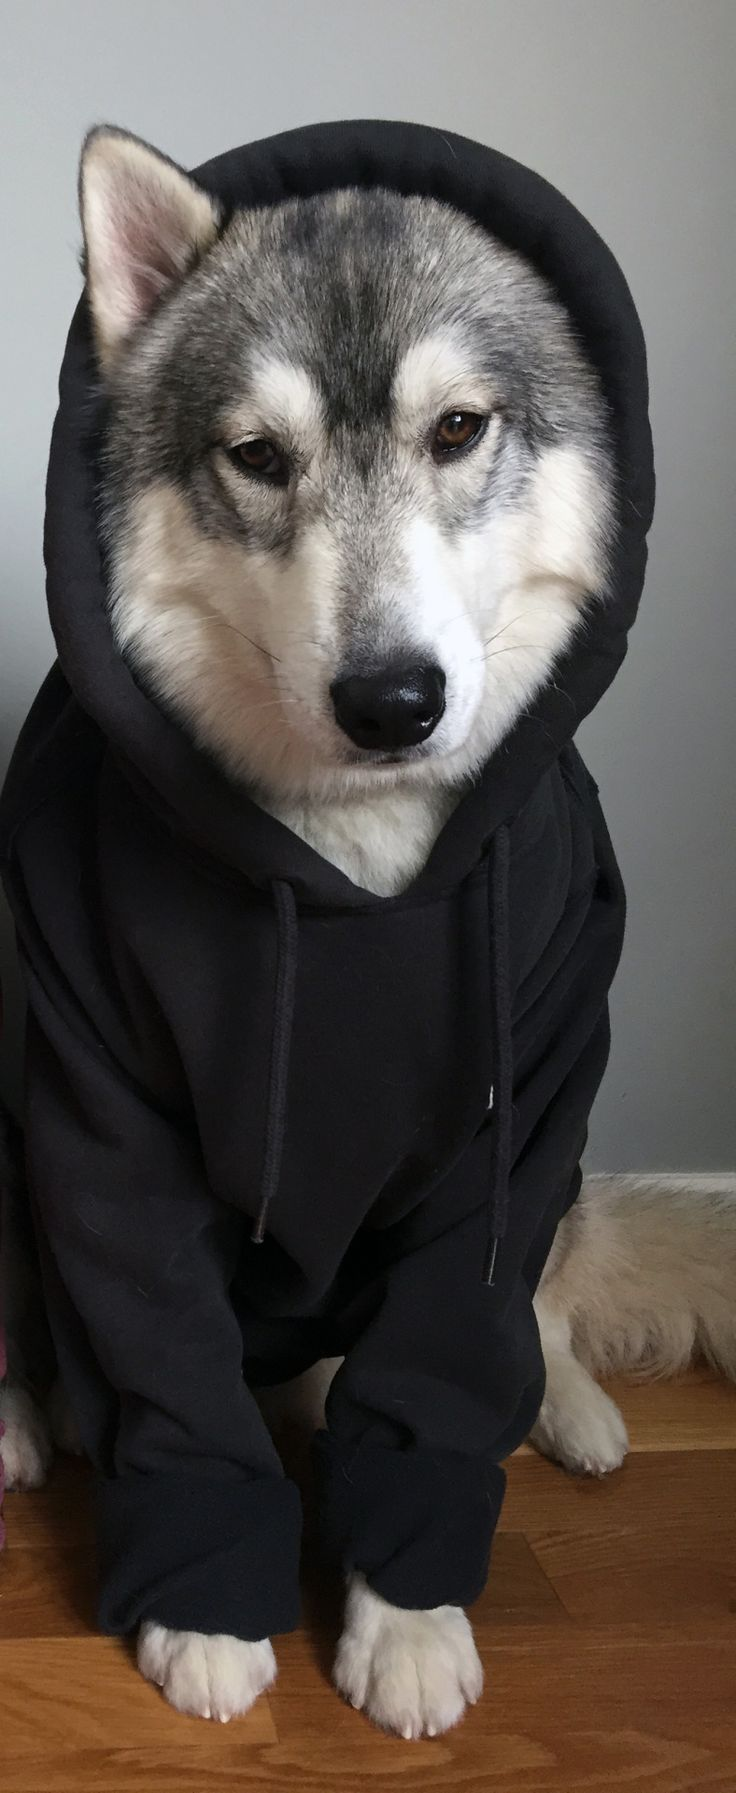 #Husky ready for winter!